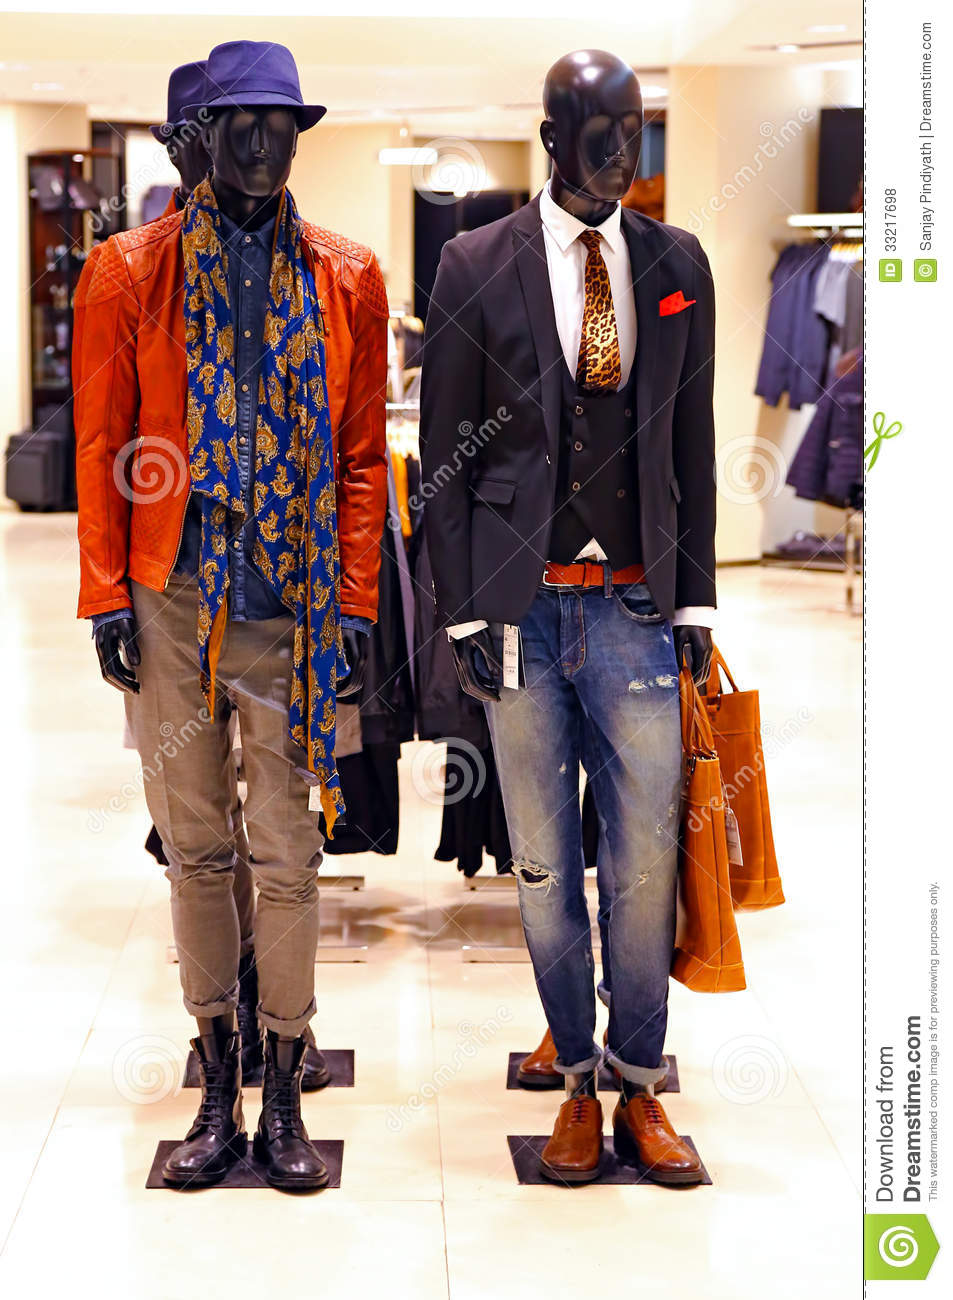 Clothing stores for men